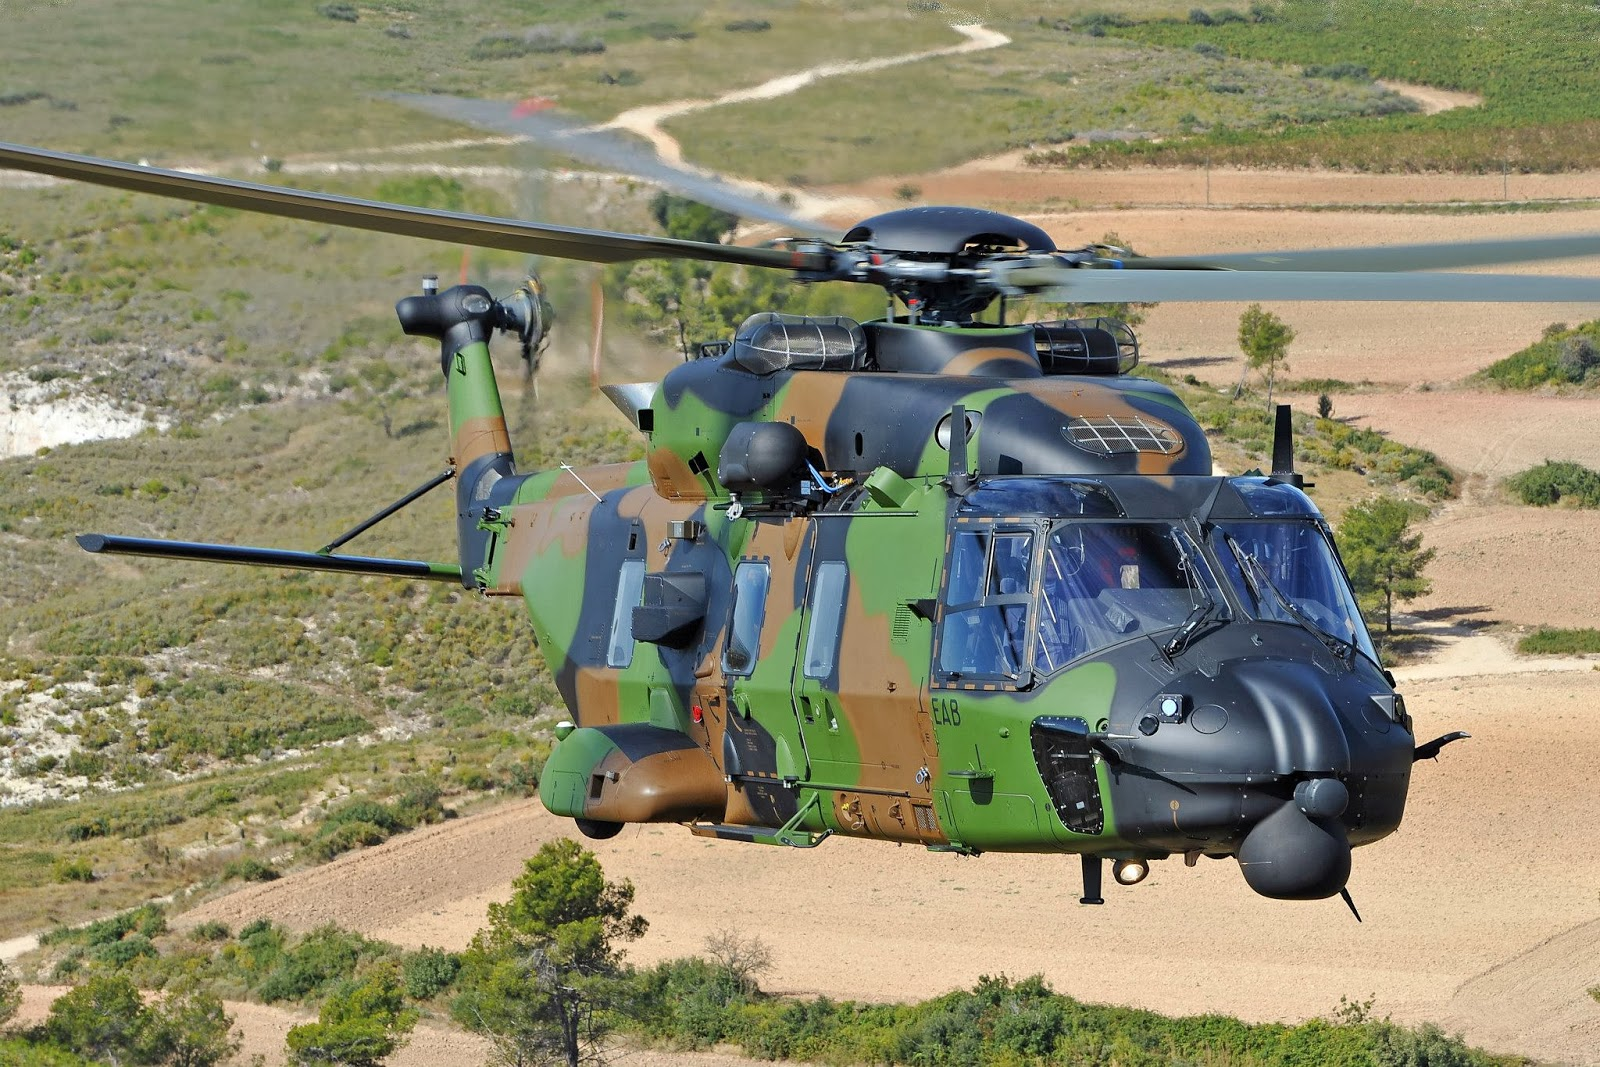 Elicottero Nh90 : Naval open source intelligence germany proposes shared